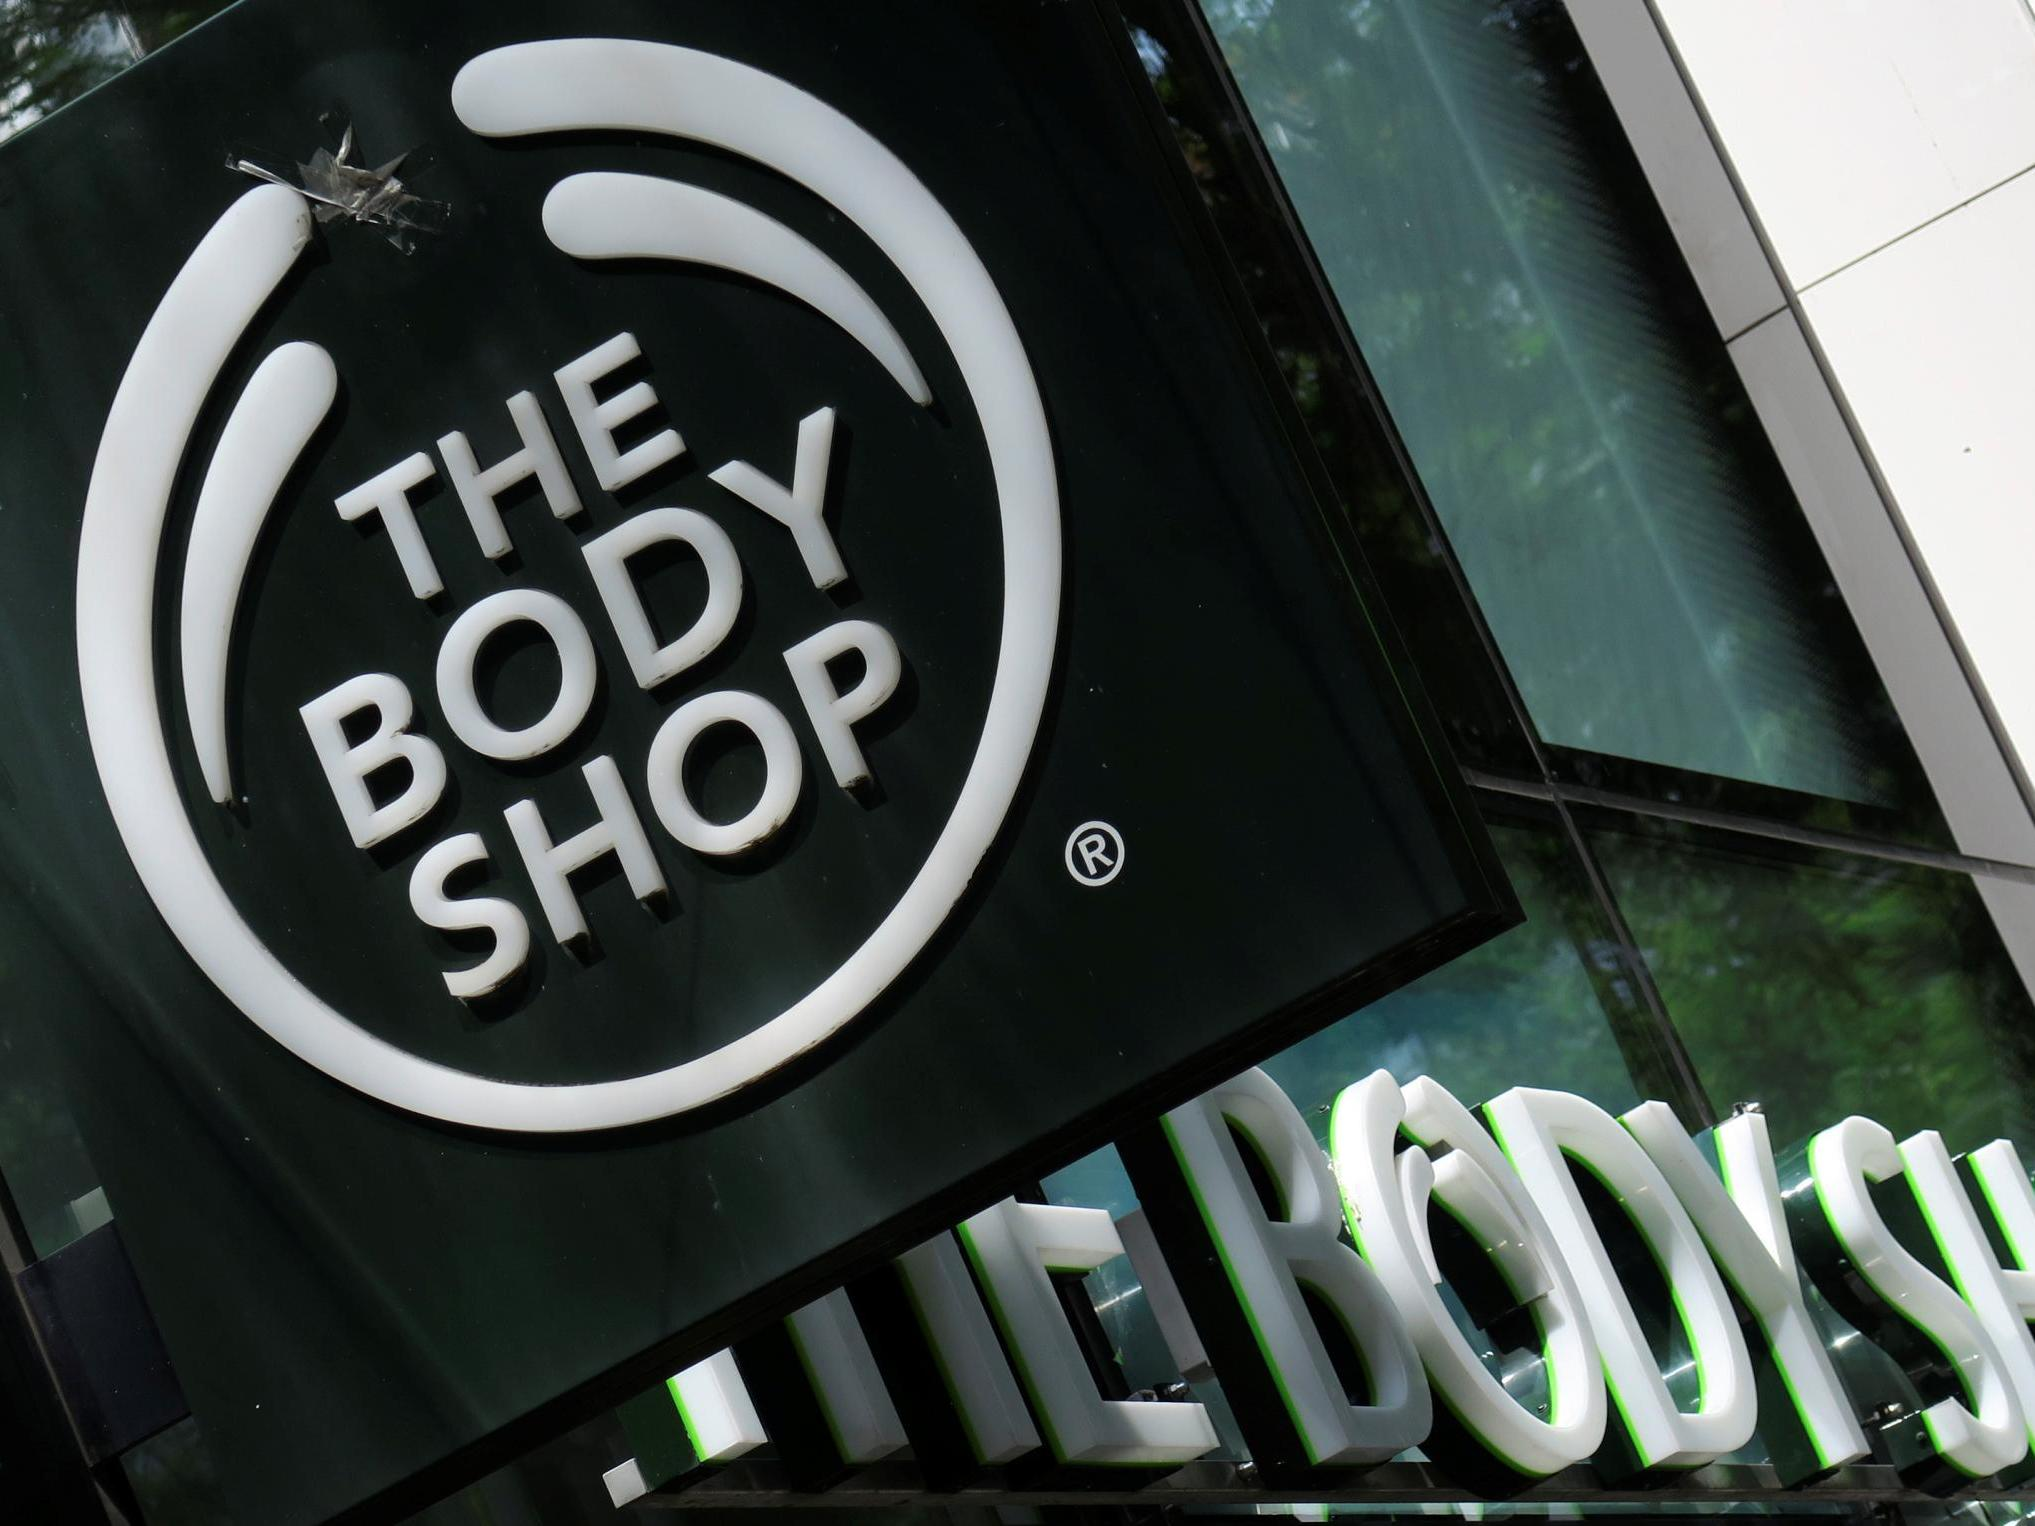 L'Oreal is considering selling the Body Shop